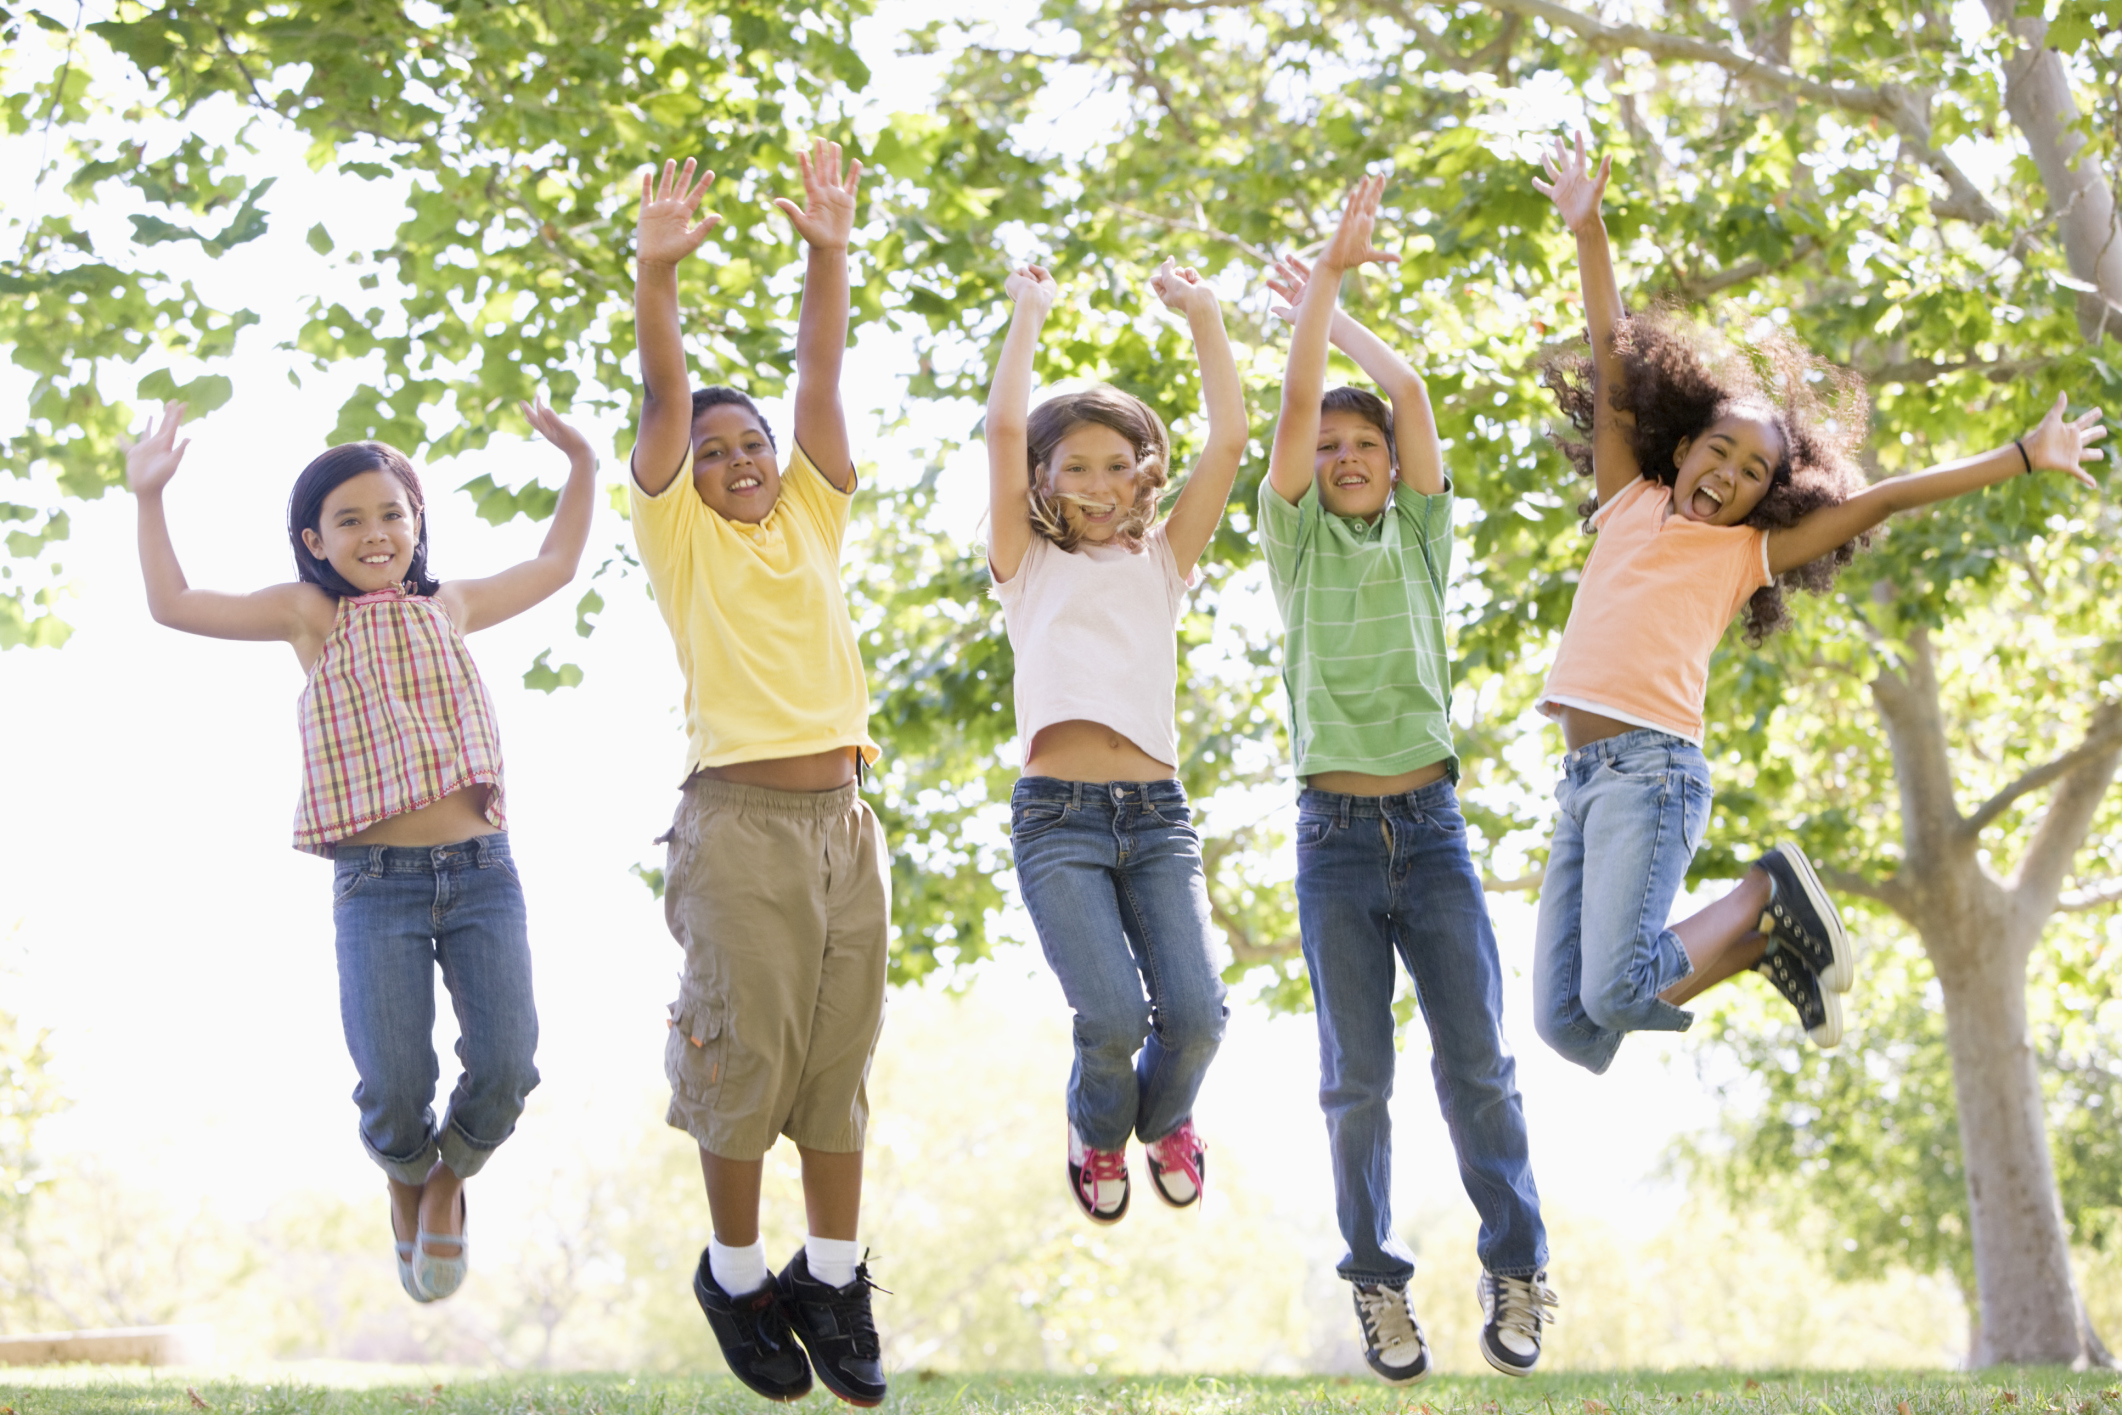 Photo of happy children jumping during an outdoors summer event. Photo by monkeybusinessimages/iStock / Getty Images